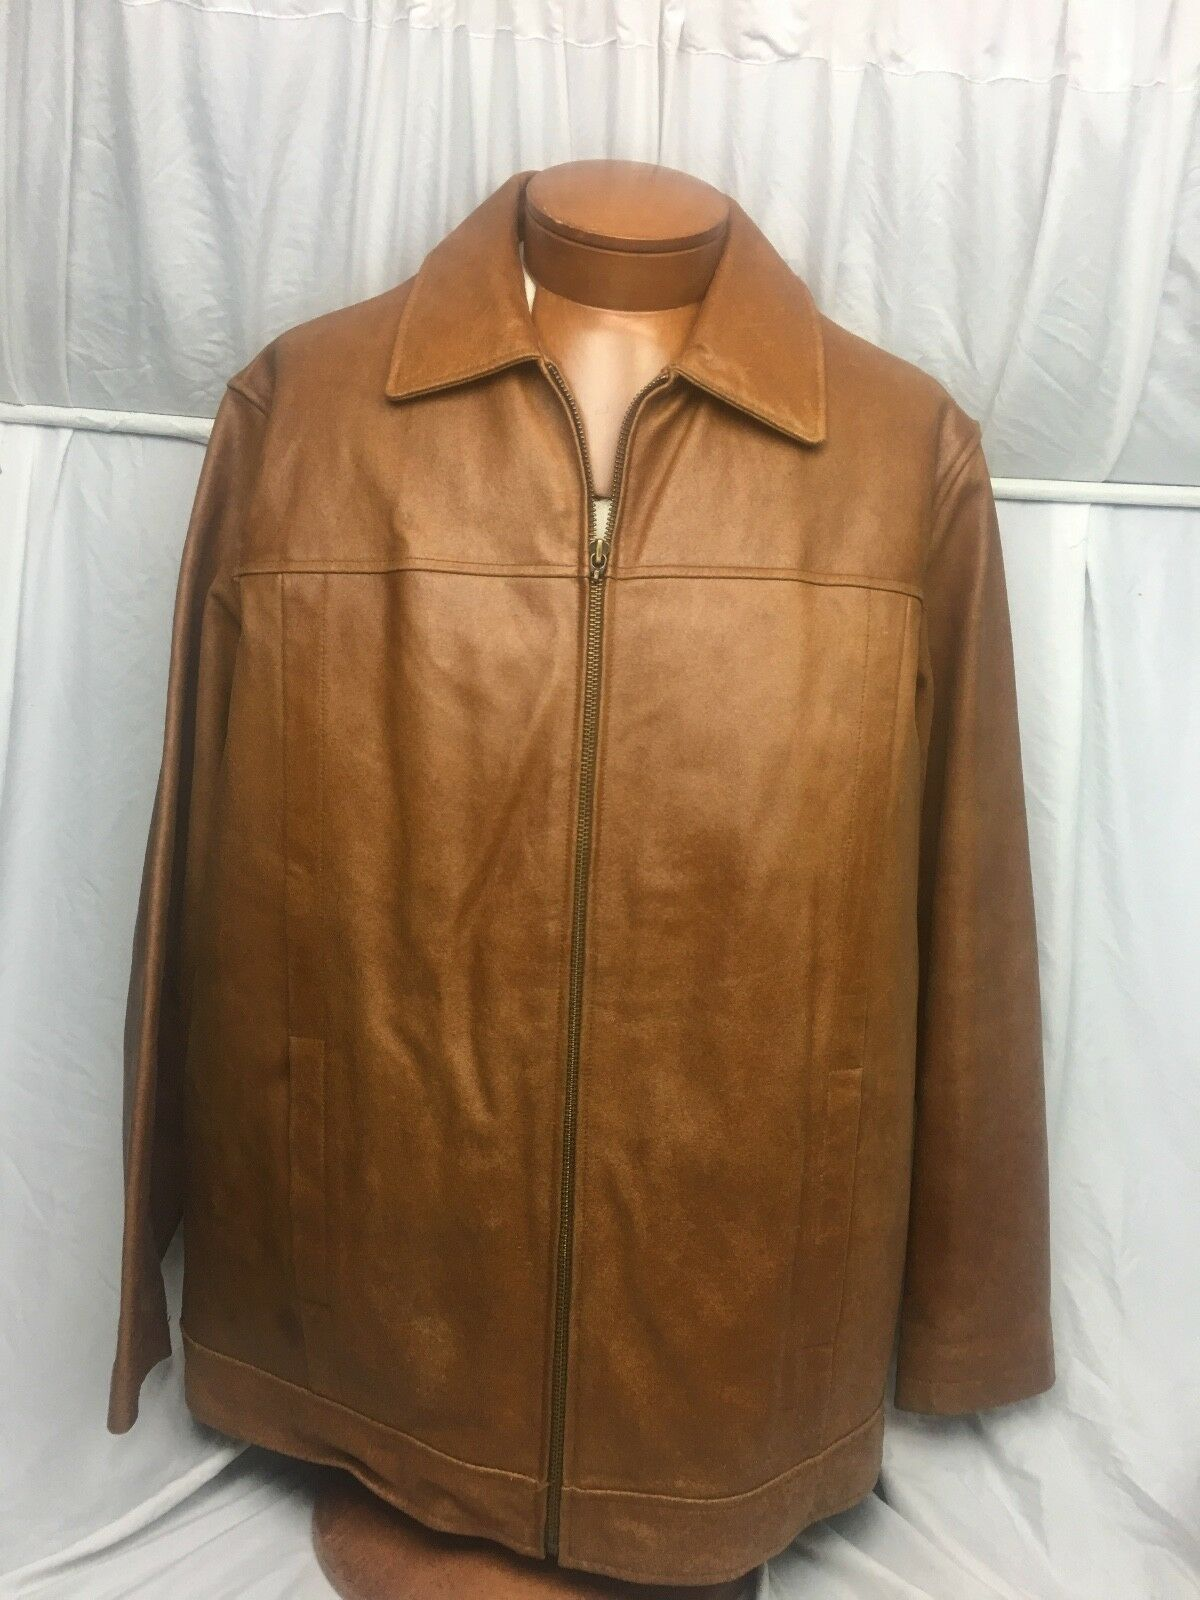 M. JULIAN  for Wilsons Brown Distressed Leather Heavy Coat Zip L NICE